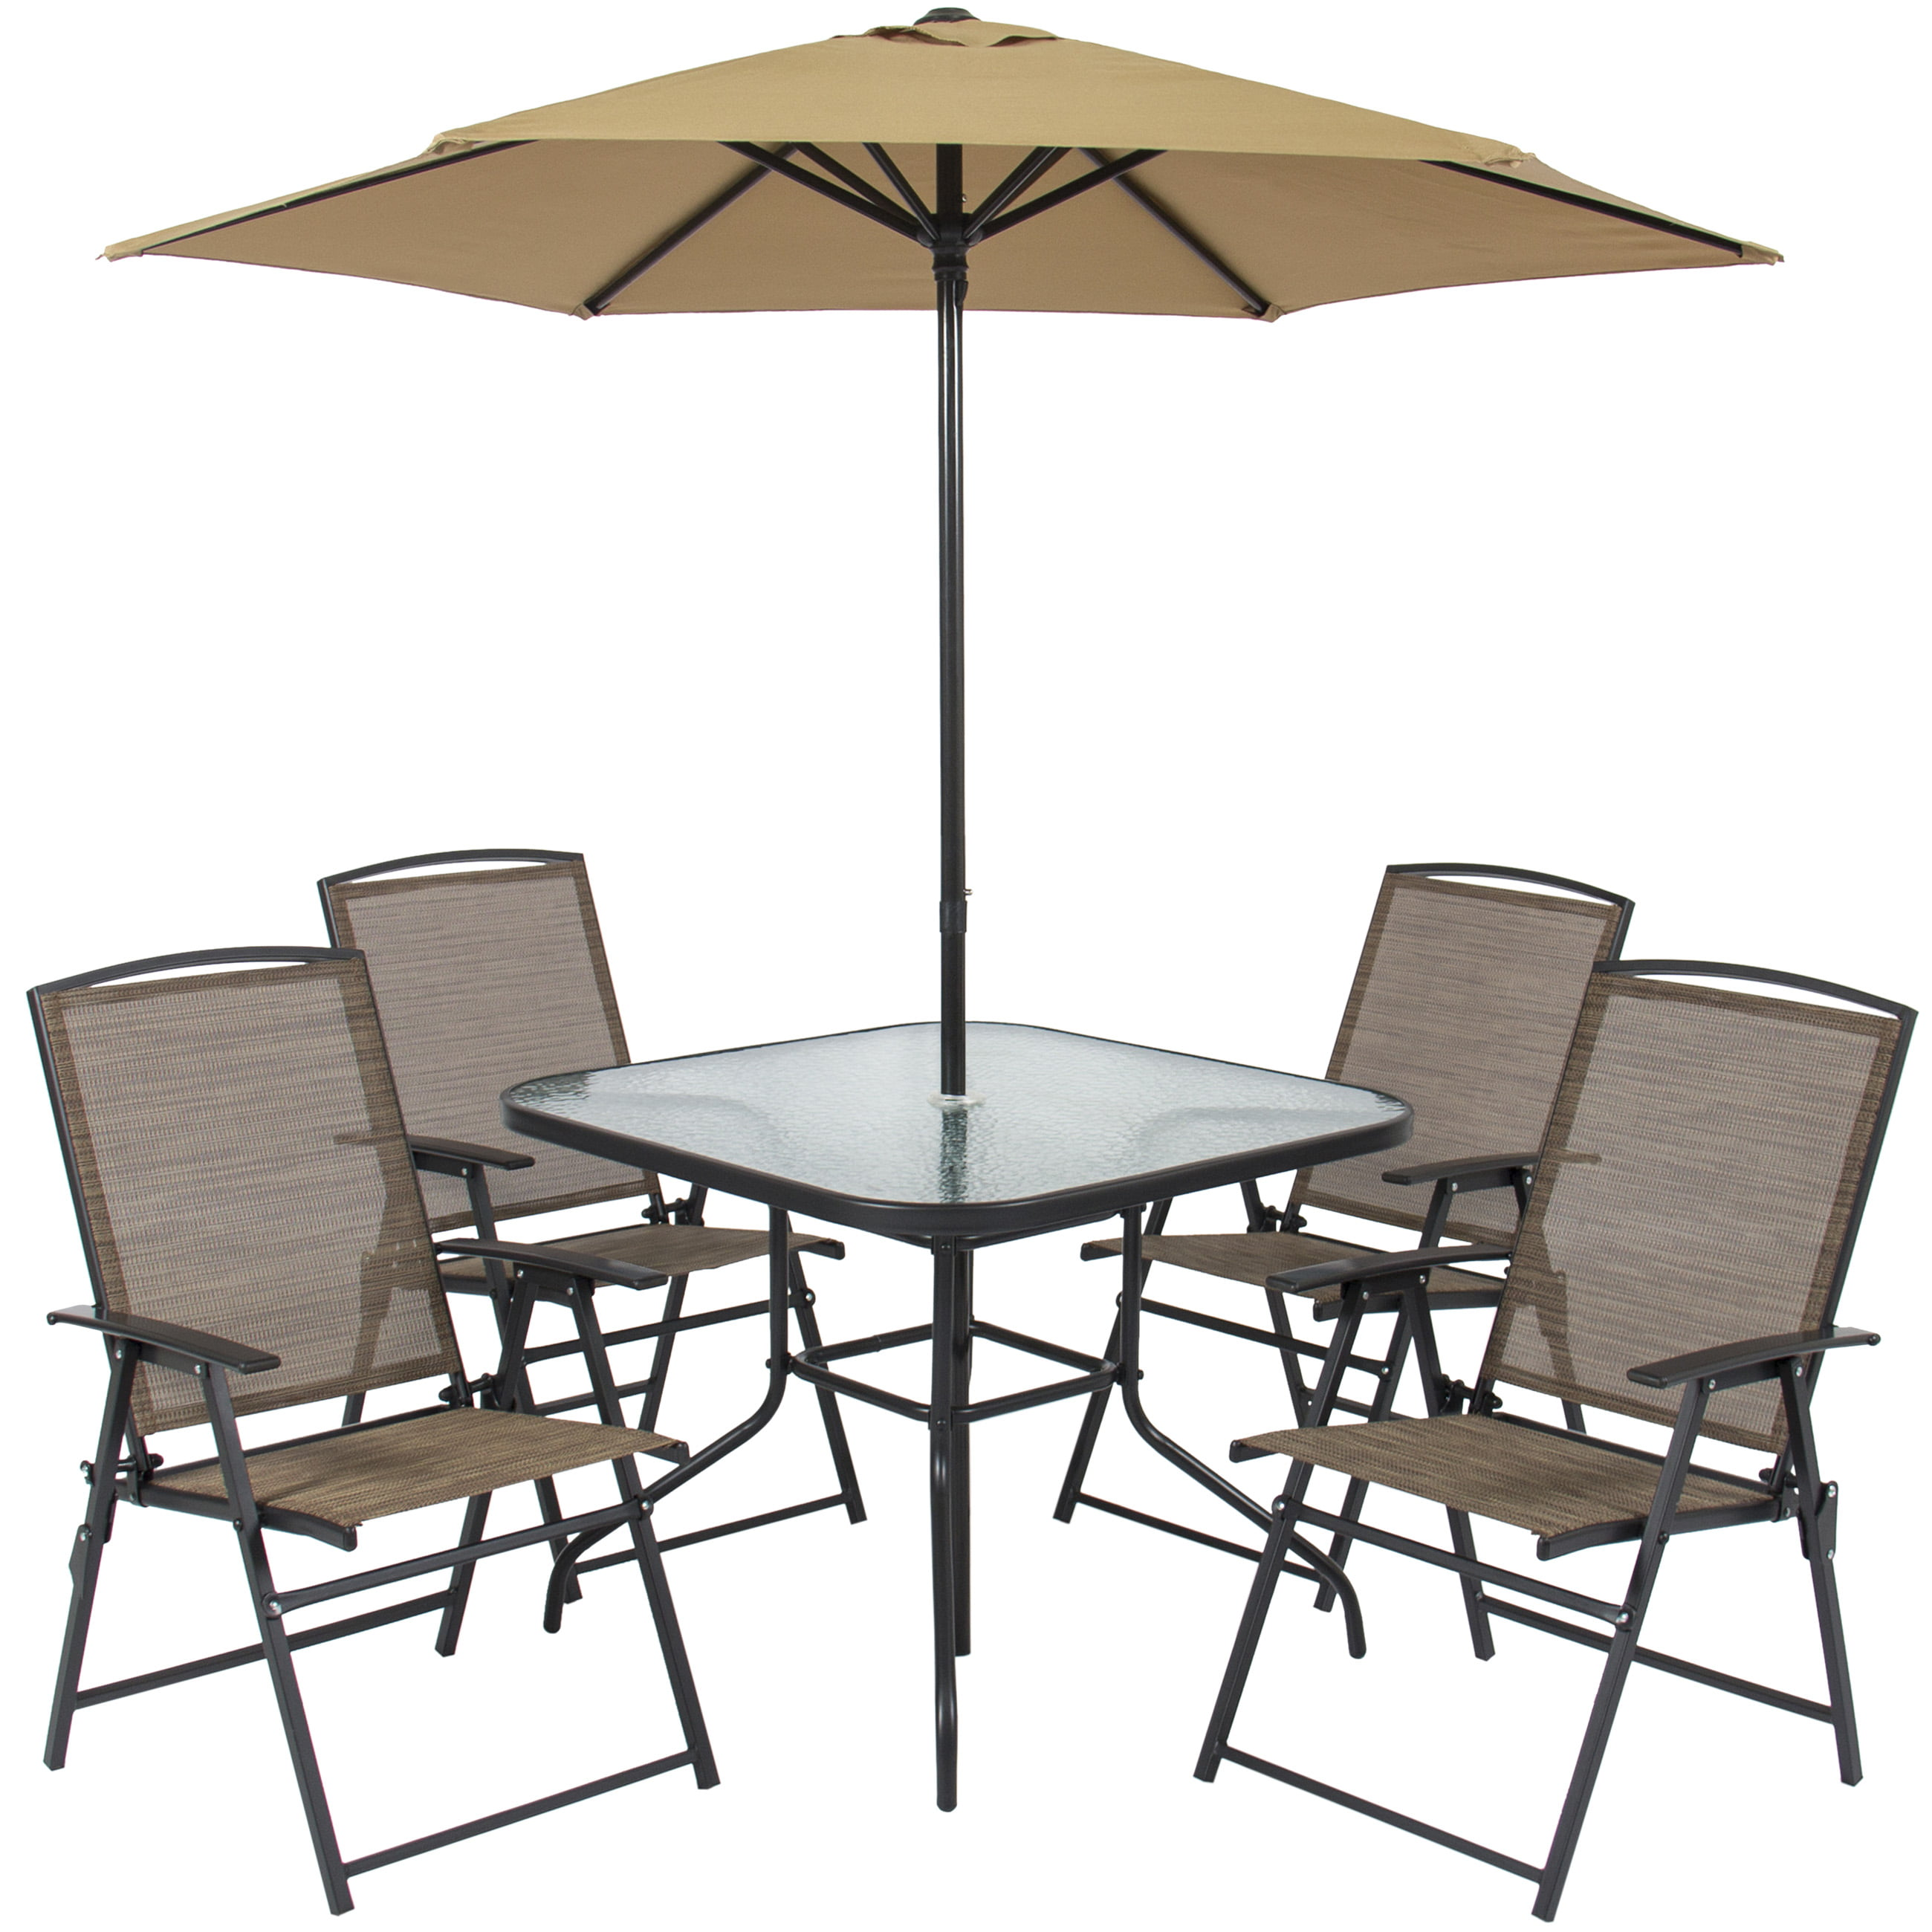 best choice products 6pc outdoor folding patio dining set w table 4 chairs umbrella and built in base walmartcom - Garden Furniture 4 All